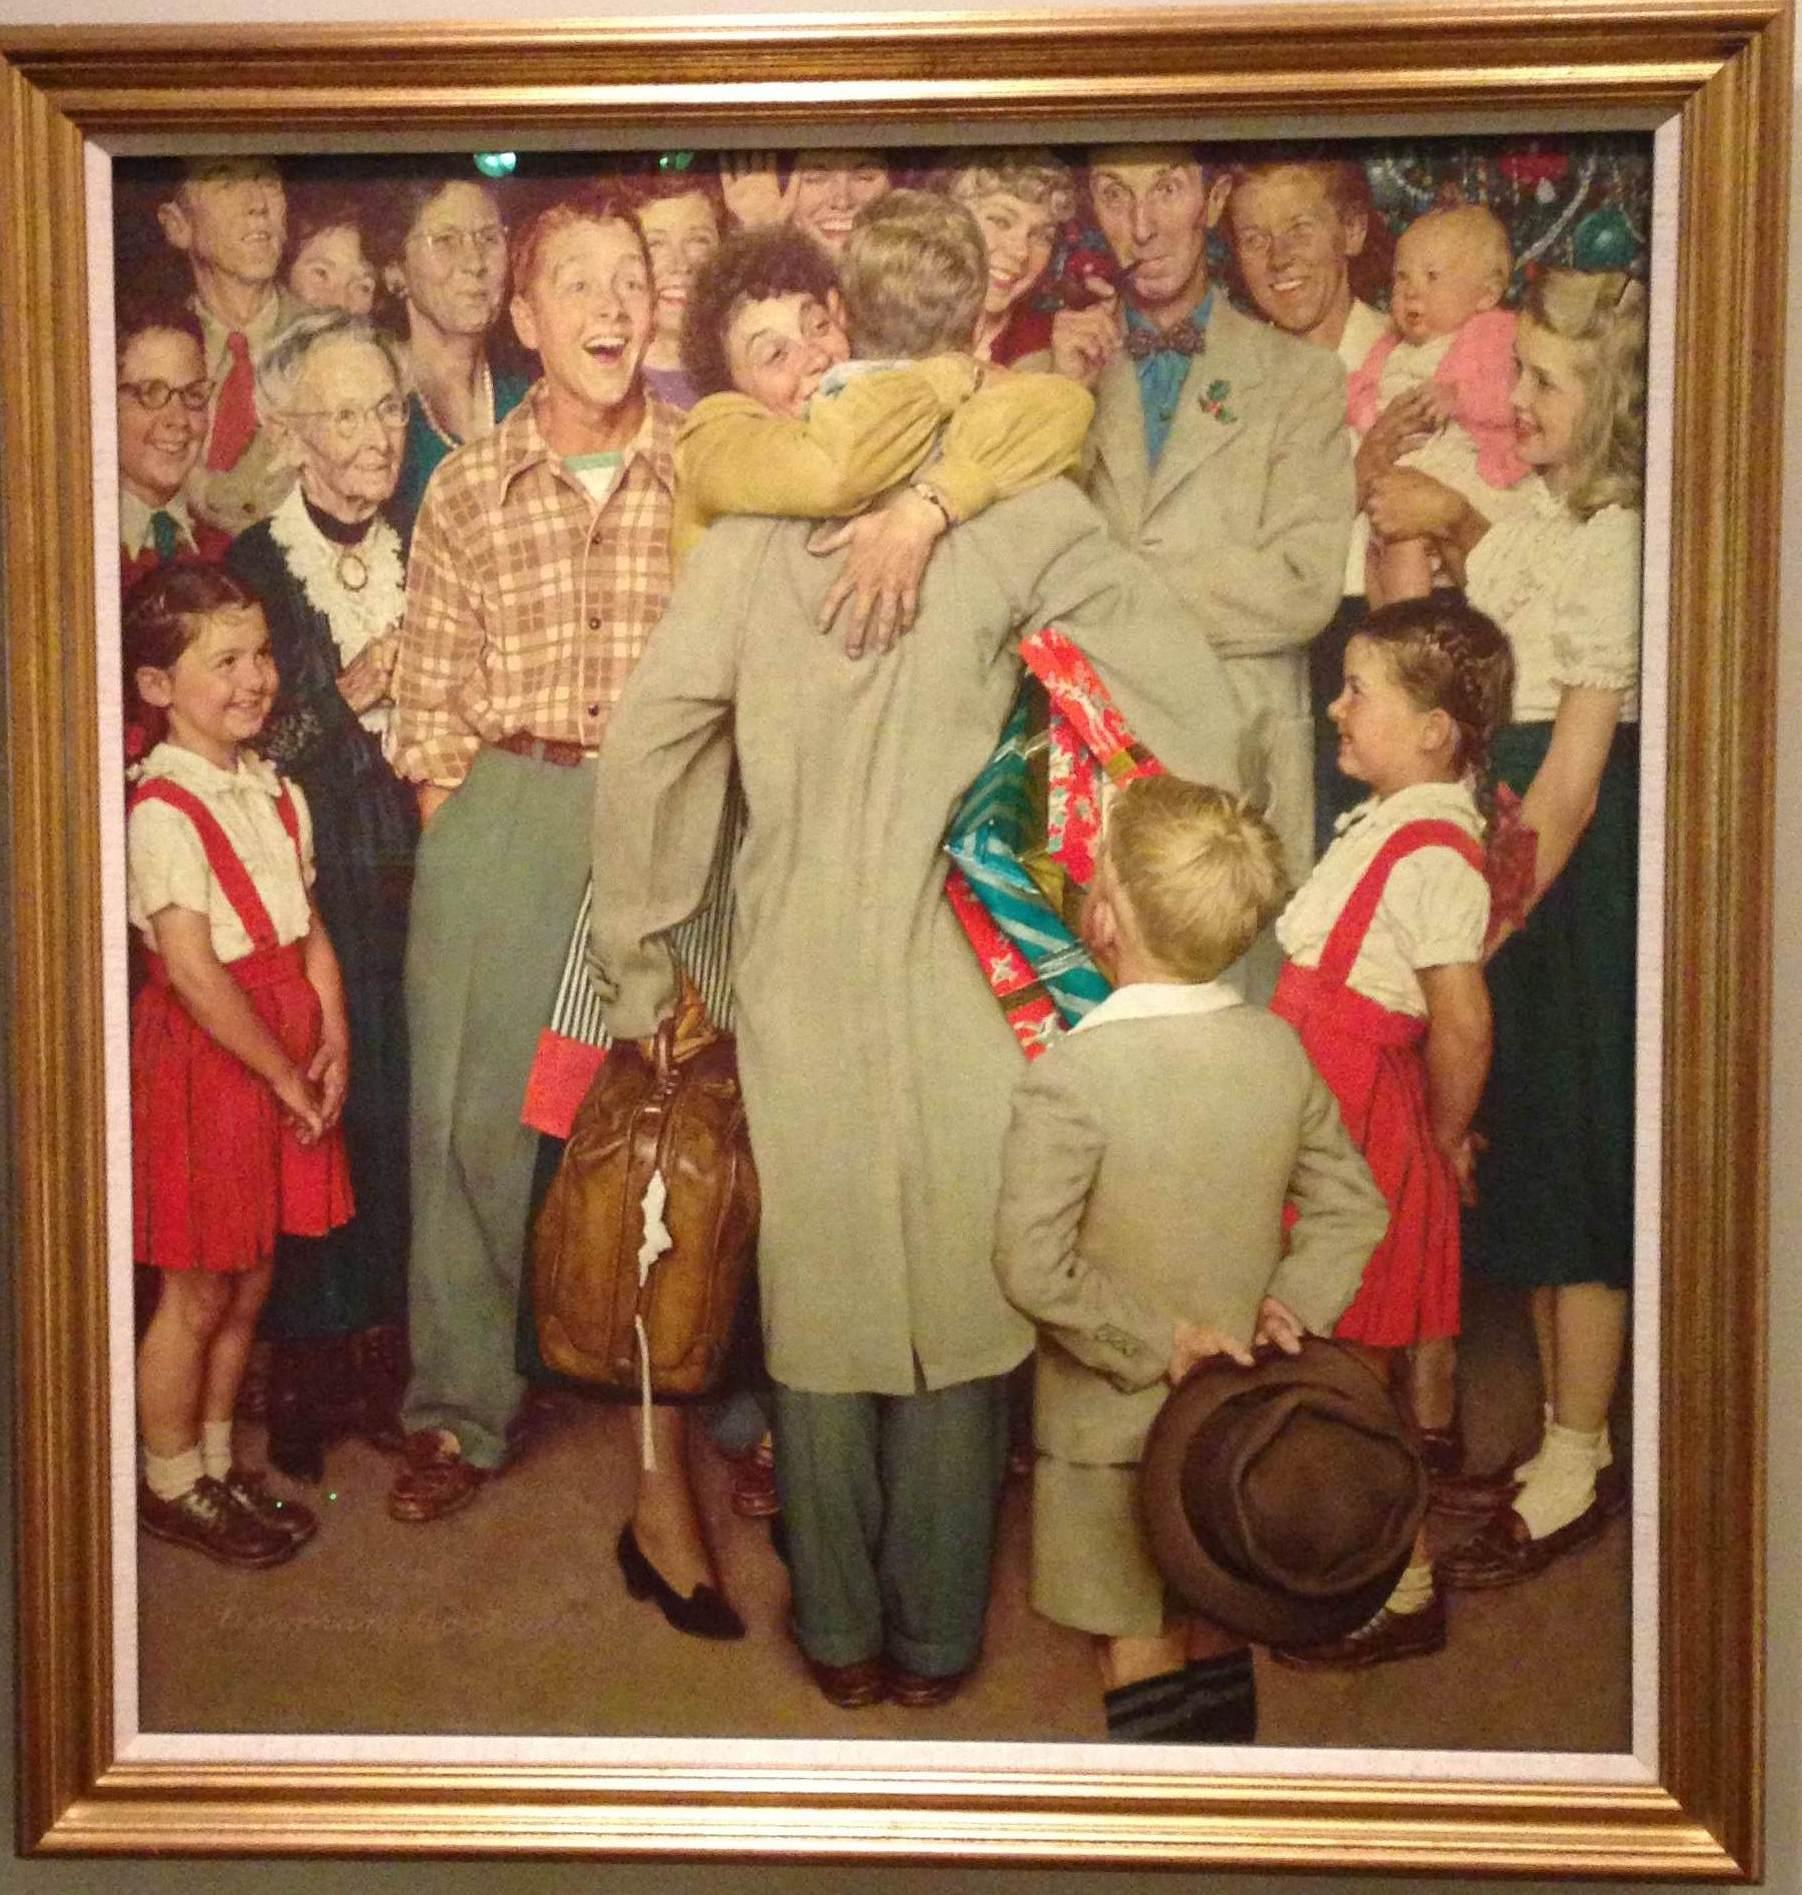 Norman Rockwell Biography Angers Family; Author Stands Firm | WAMC